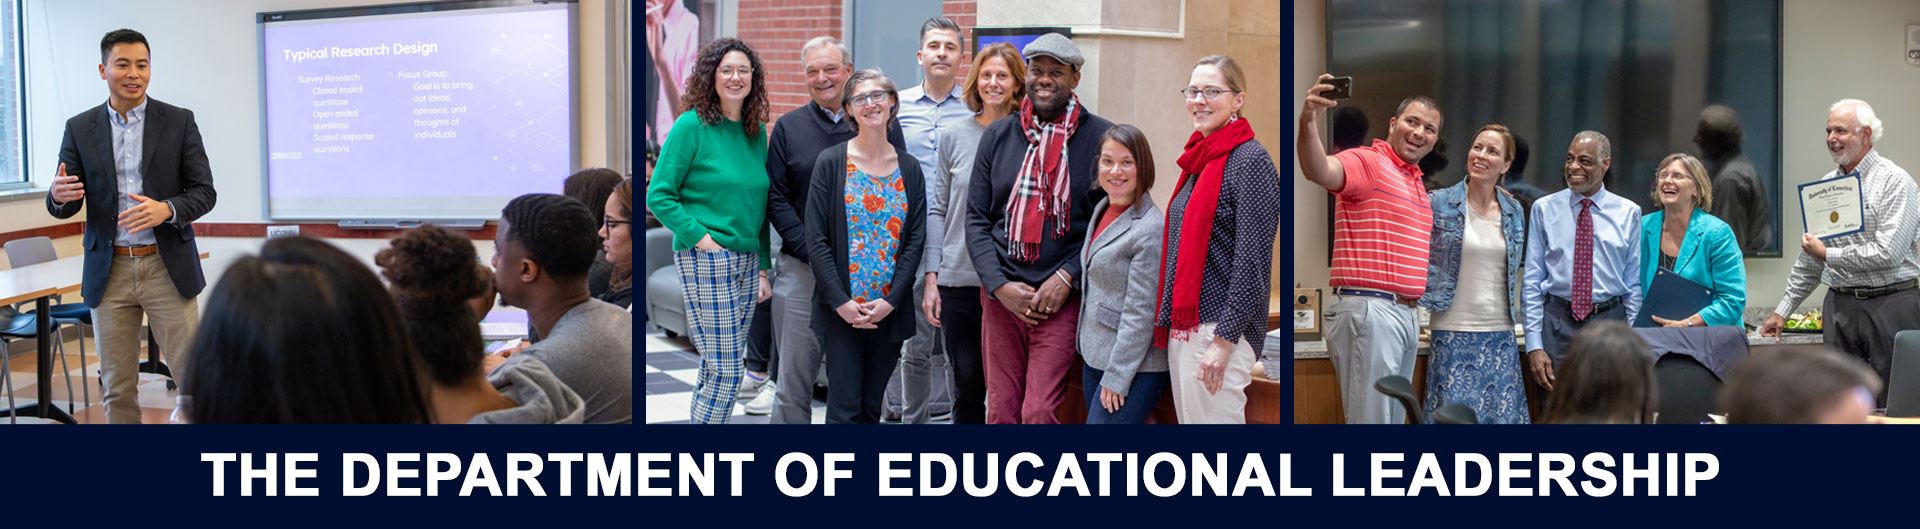 The Department of Educational Leadership (collage of photos)